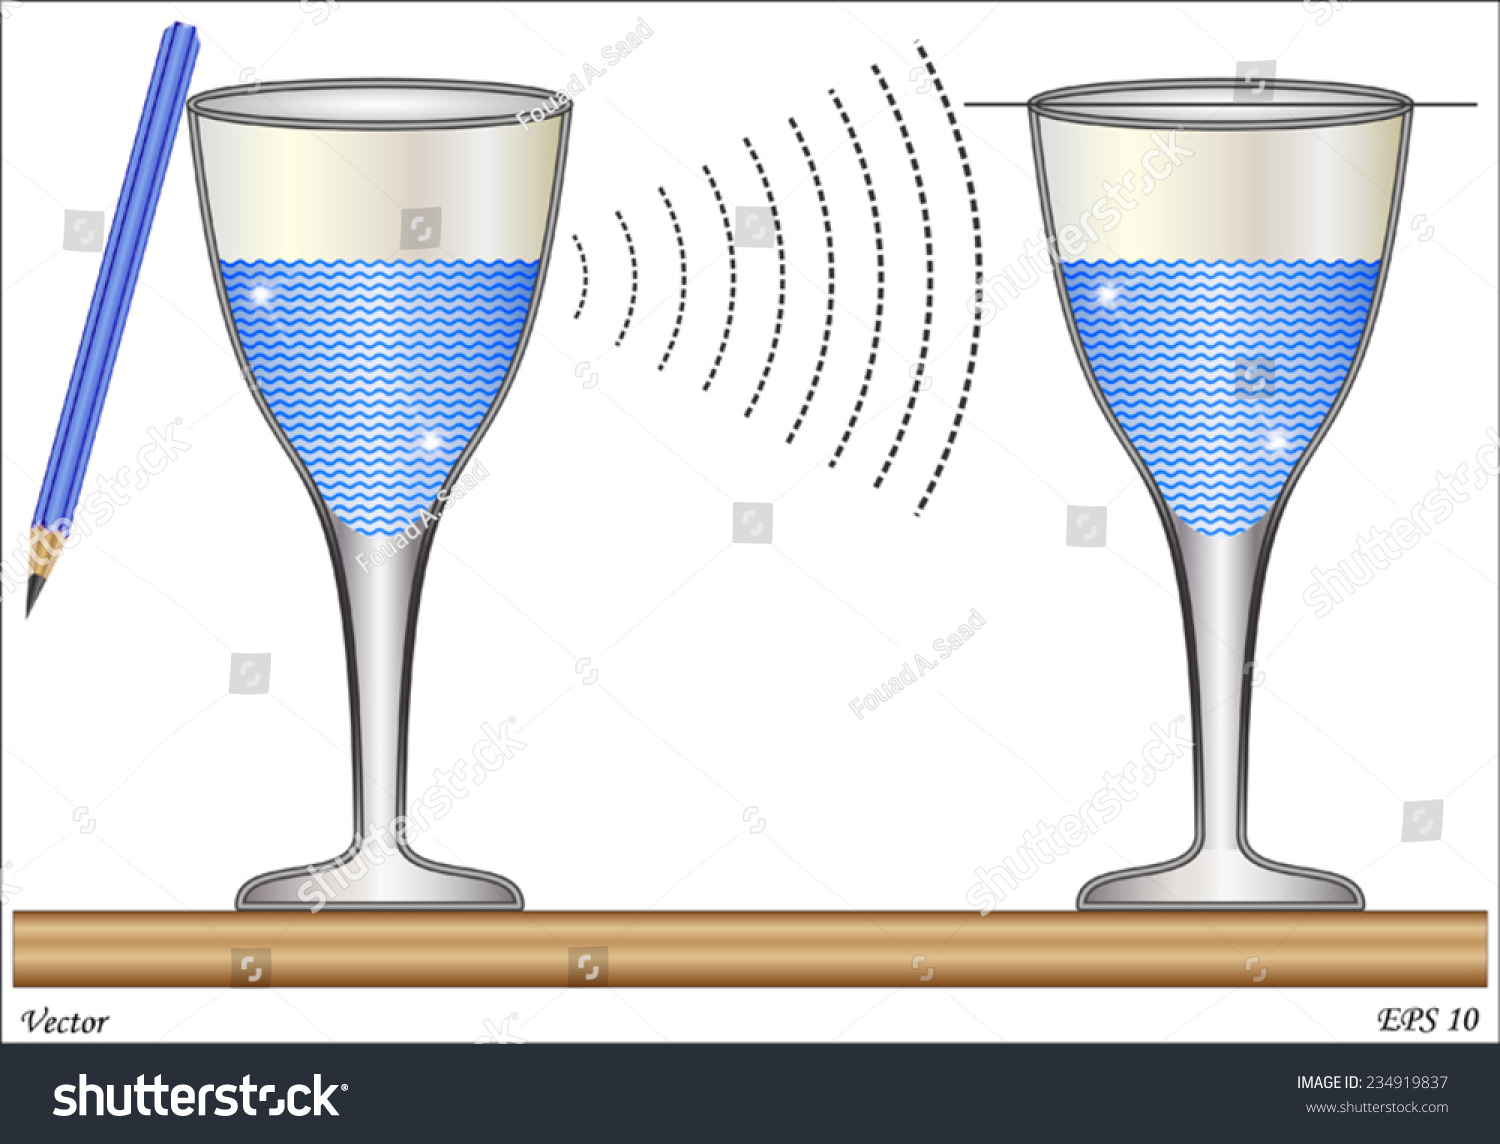 how to make sound with wine glass